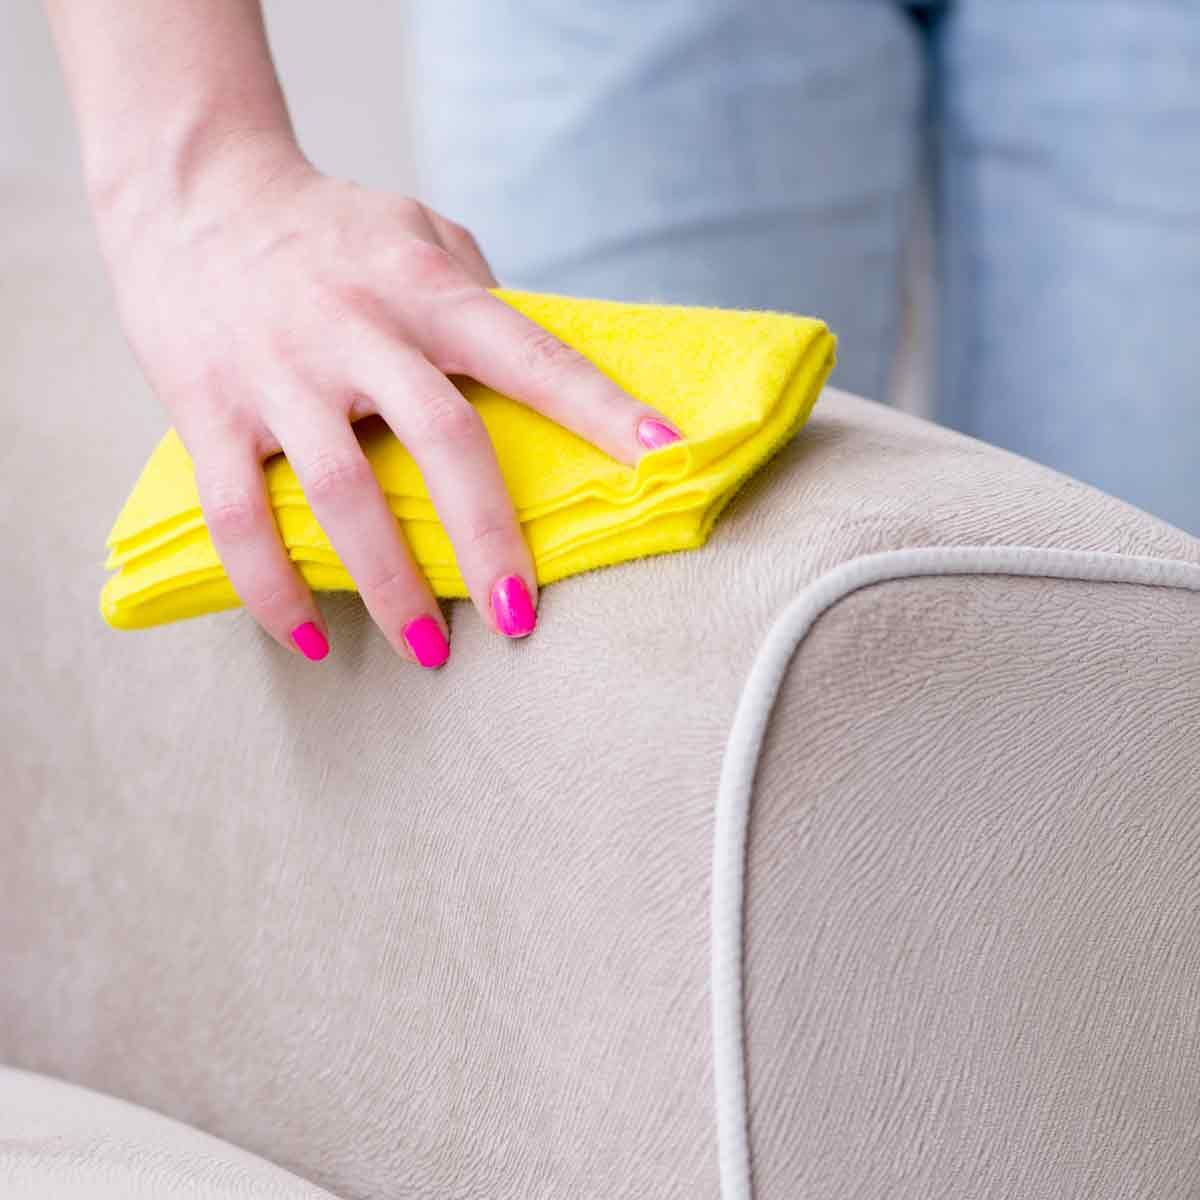 Woman-cleaning-a-couch